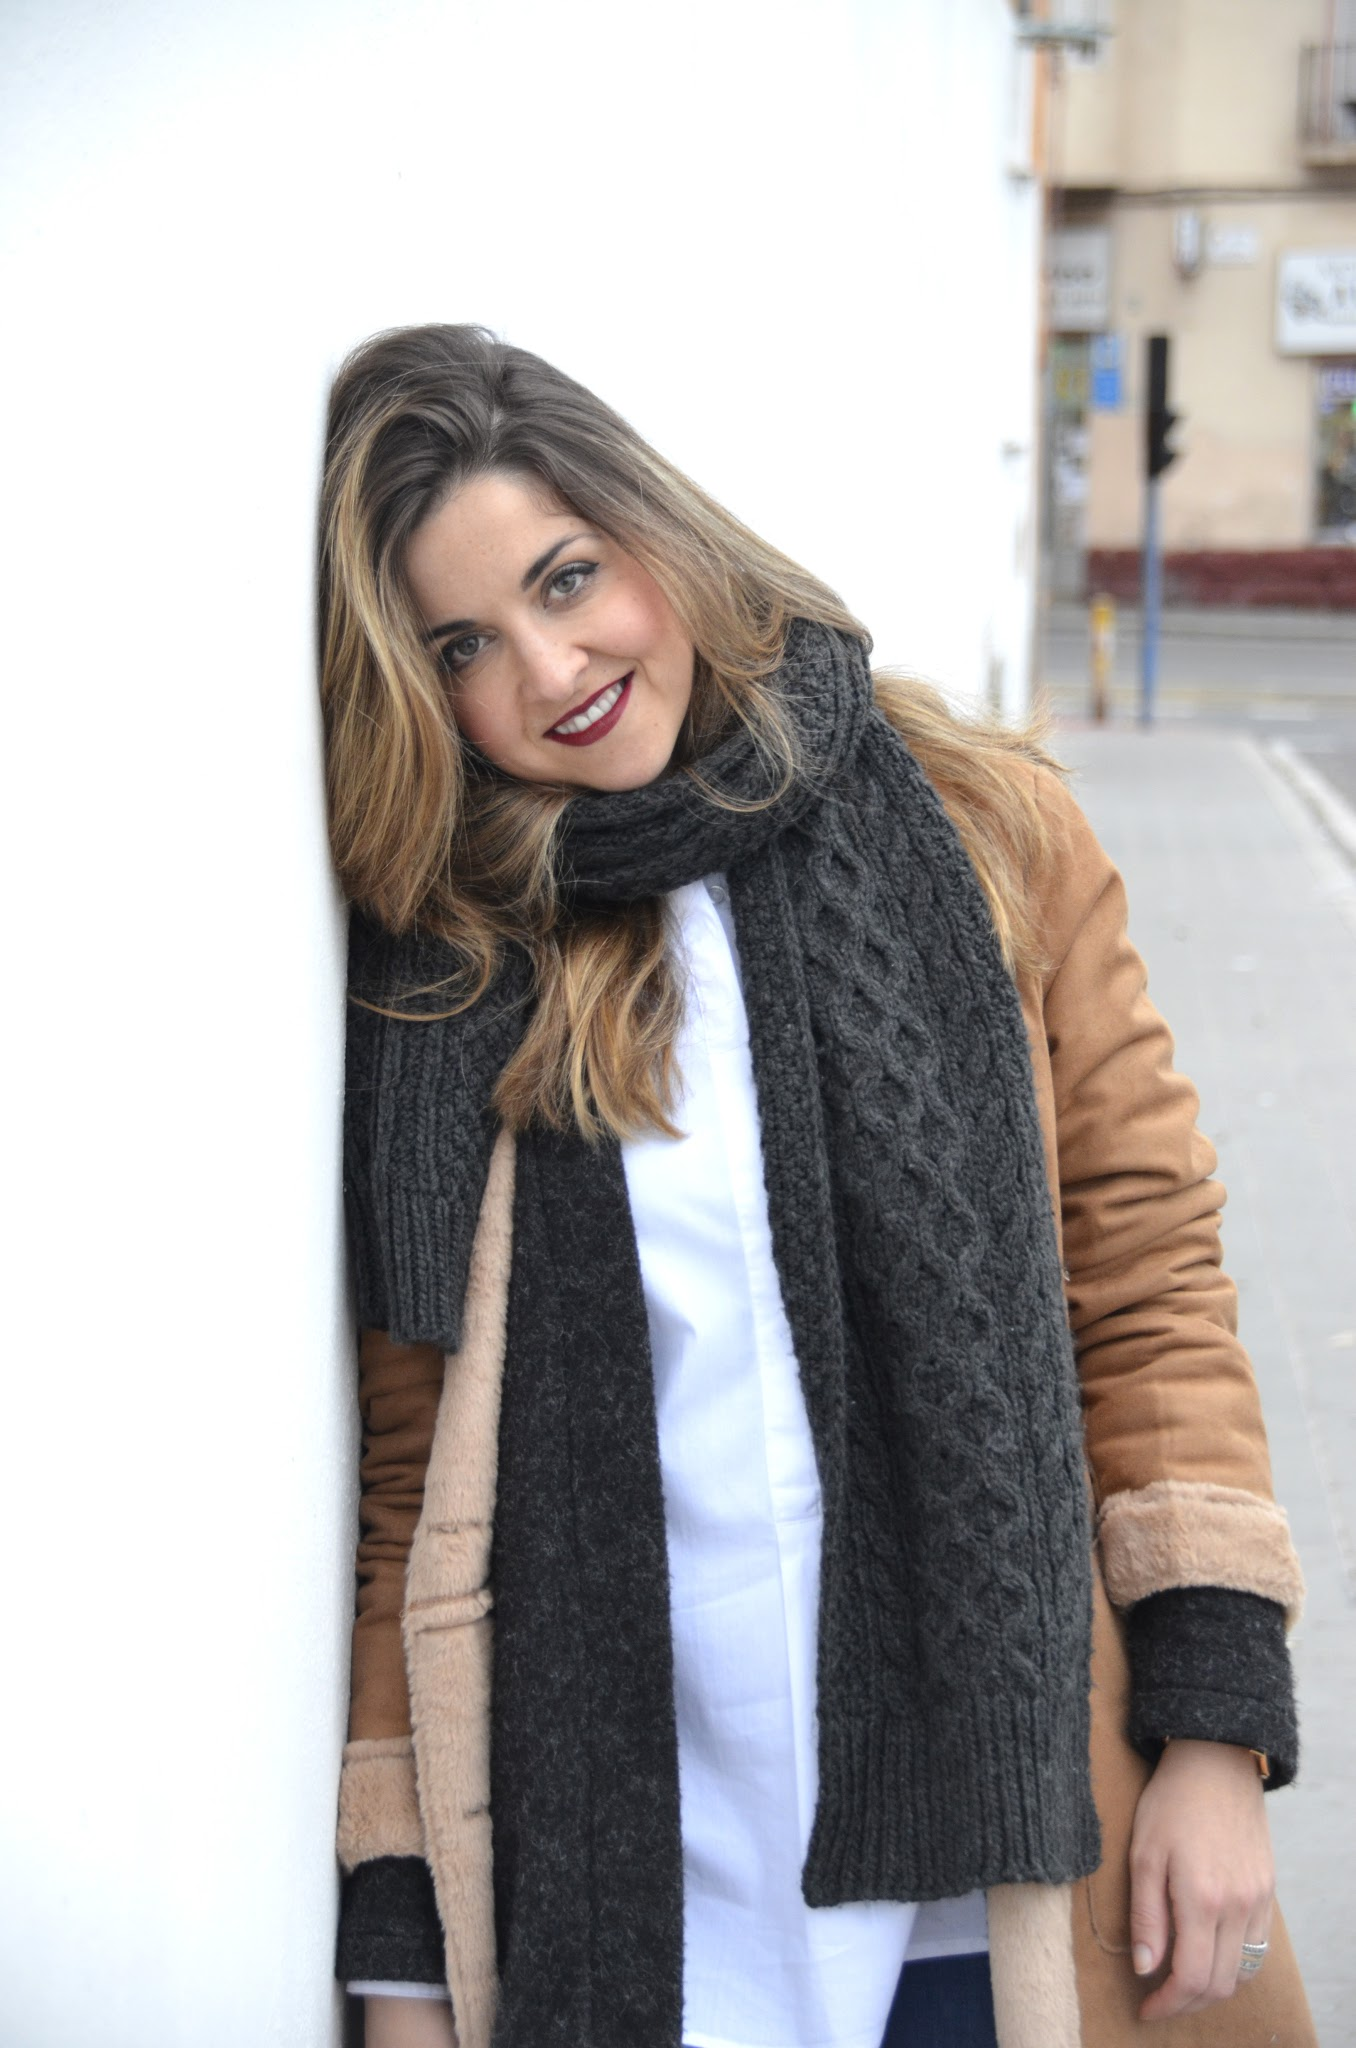 flared jeans and suede coat outfit